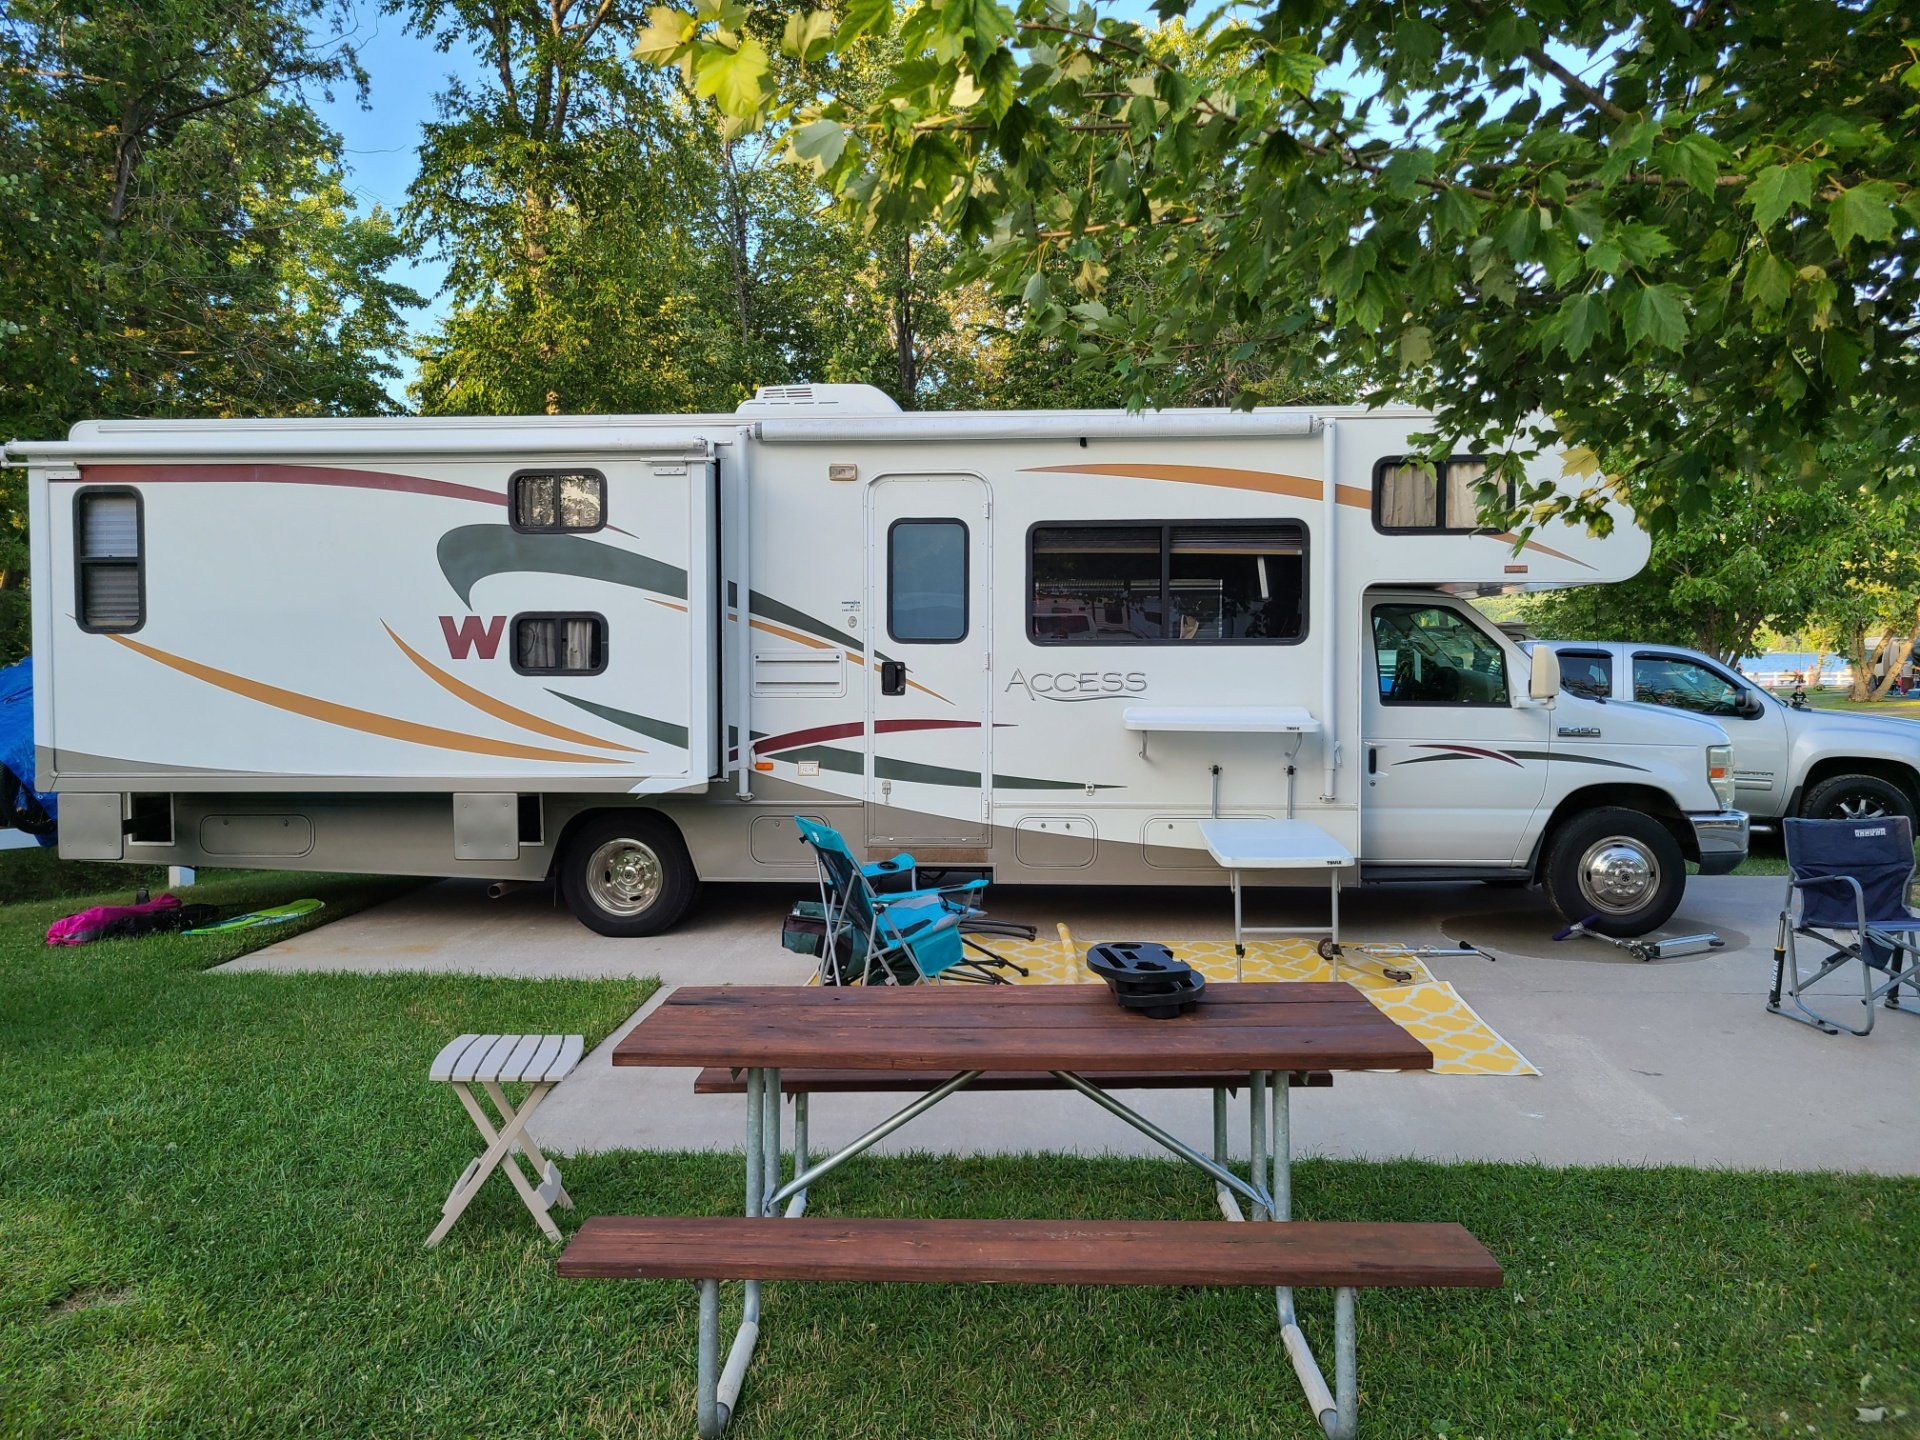 Benefits of Camping in a RV